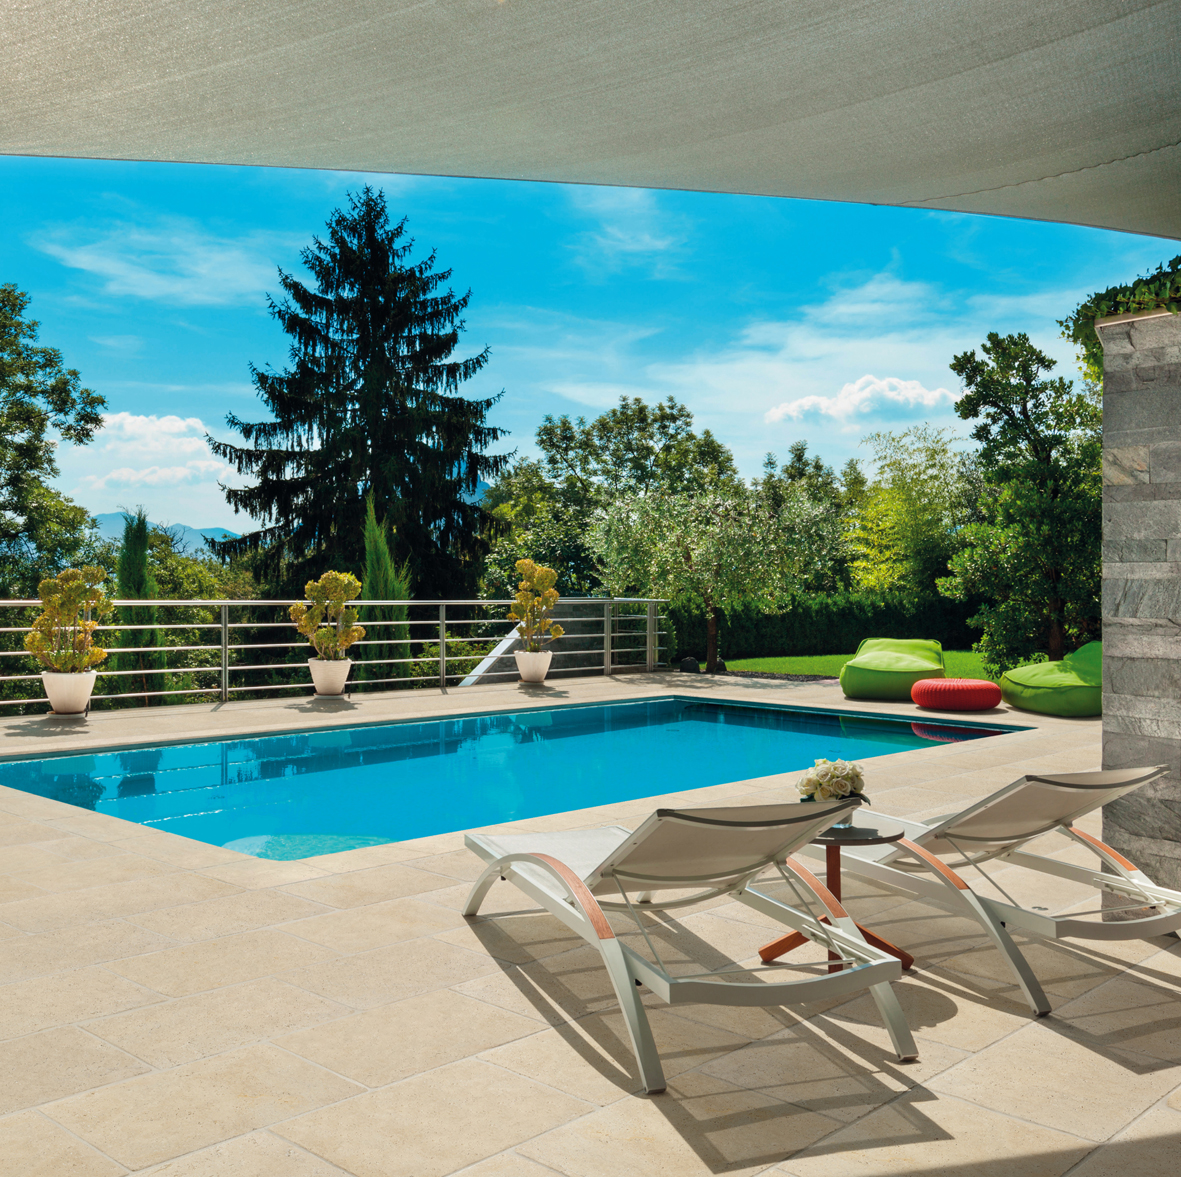 Ligne pierre naturelle carre d arc batipresse for Carrelage contour piscine